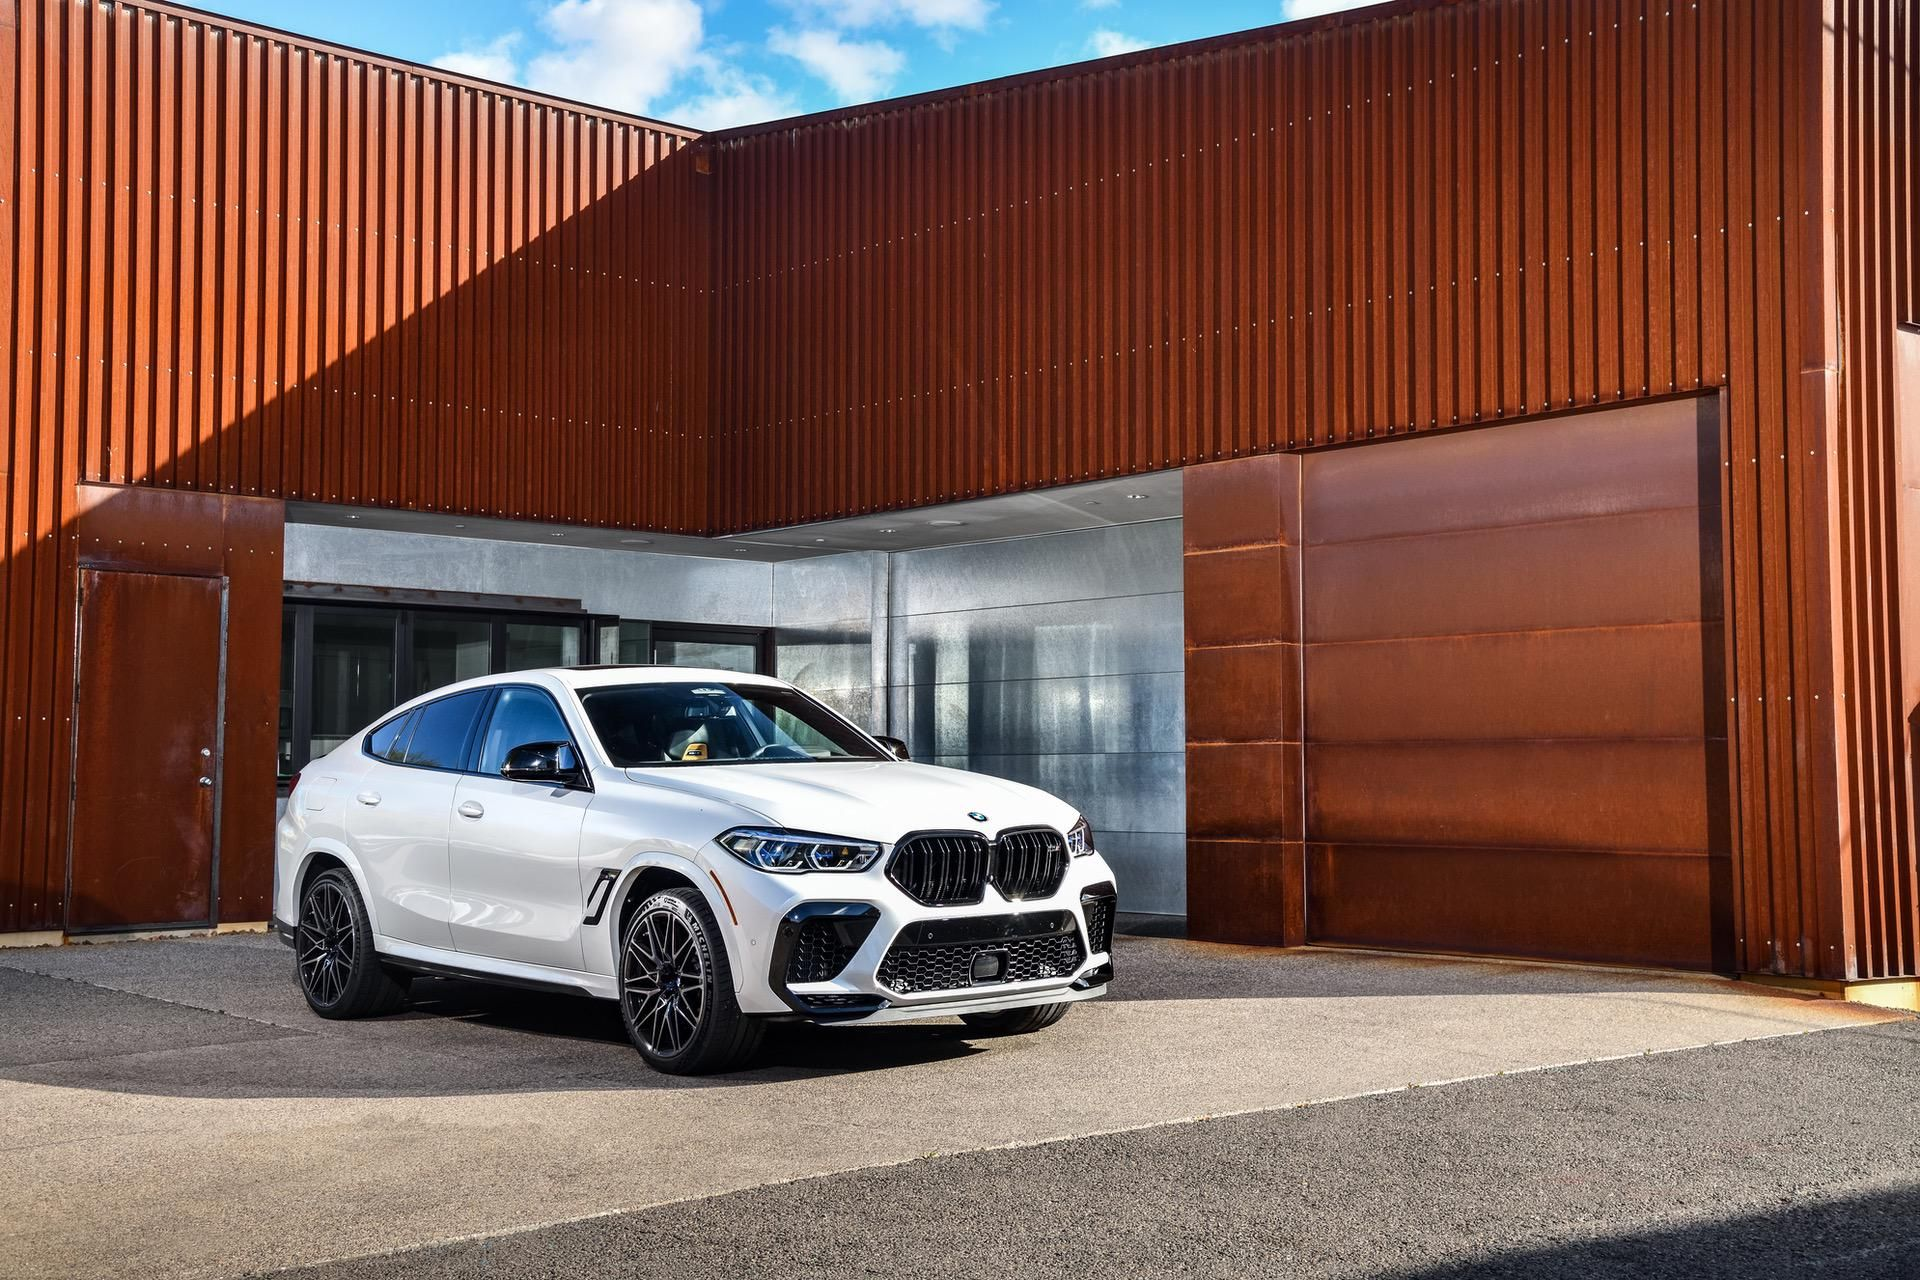 Video Carwow Drives The Bmw X6 M Competition 3 4 Seconds Sprint In 2020 Bmw X6 Bmw Living In Car